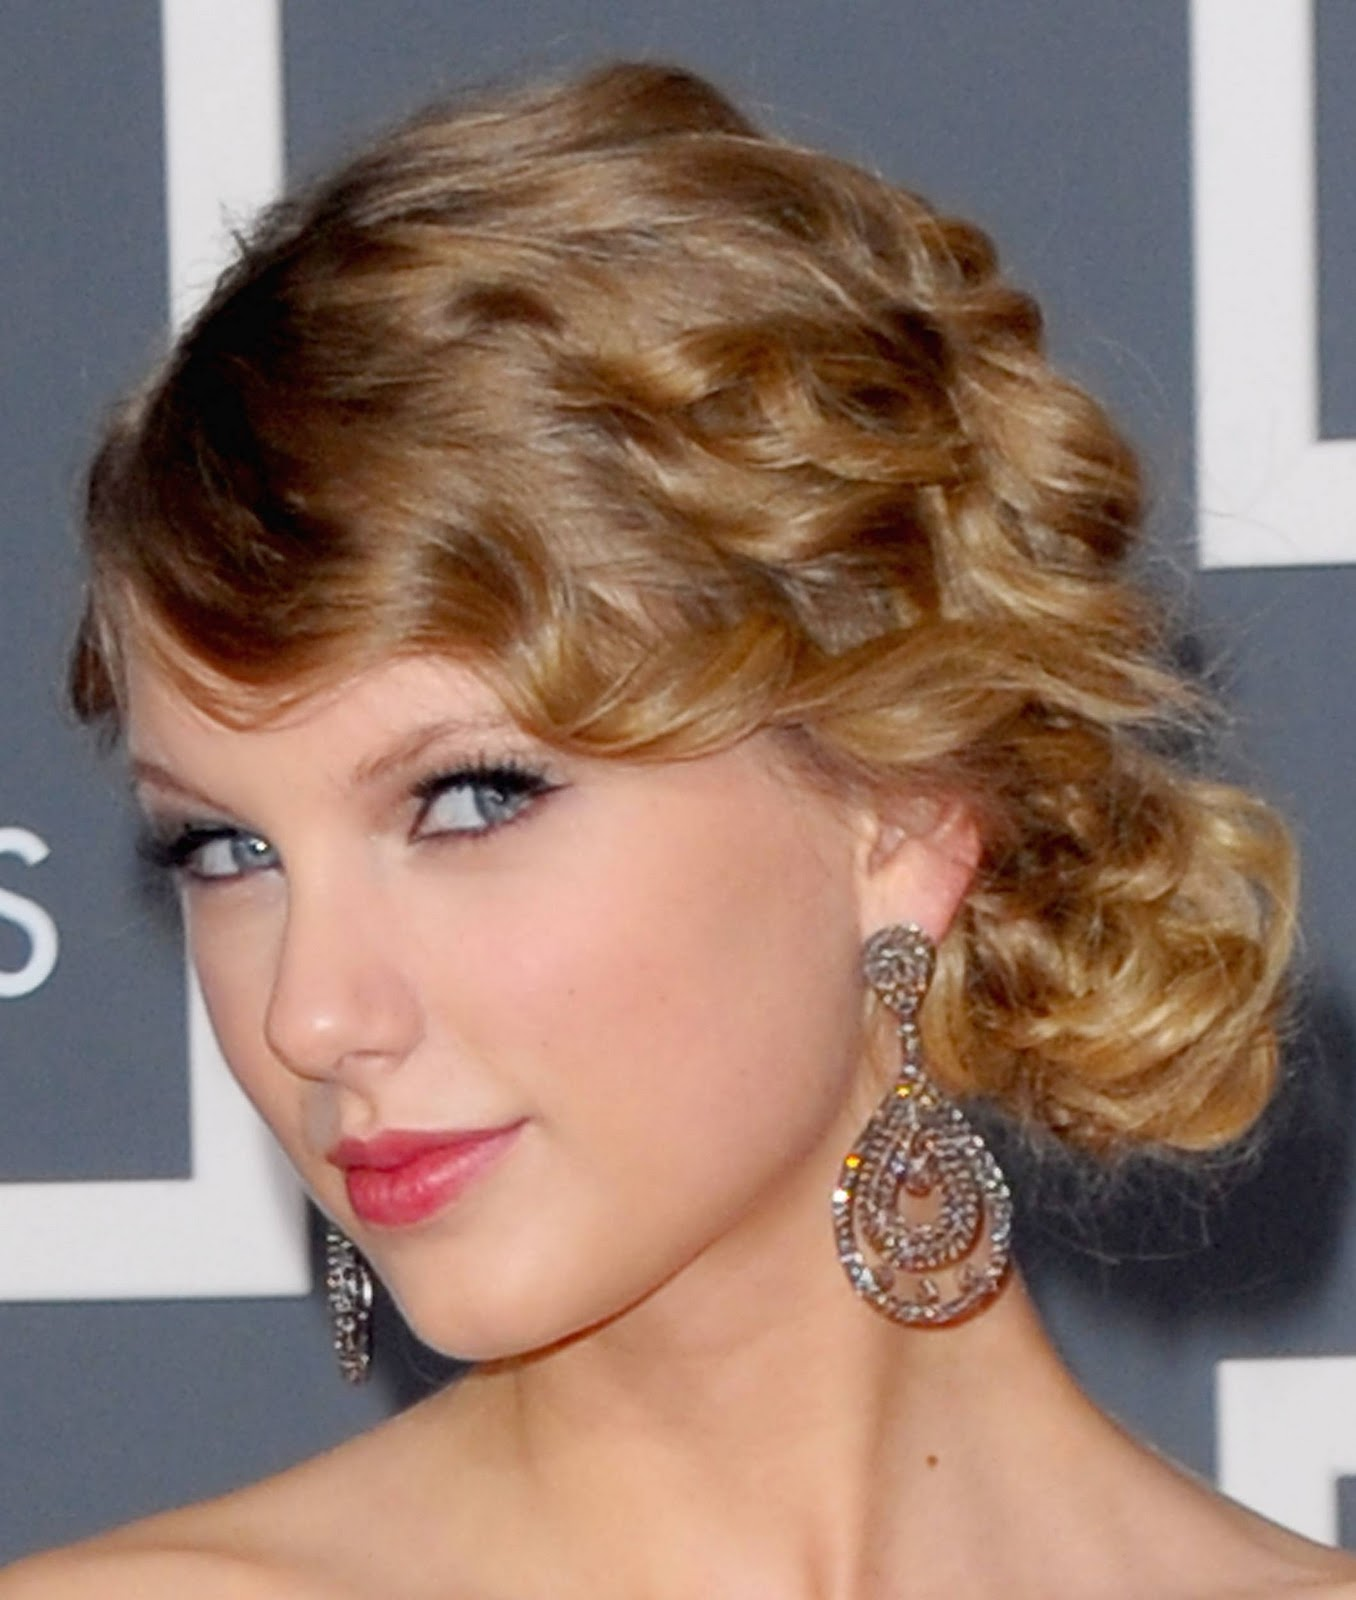 10 Female Celebrity Taylor Swift Stunning Hairstyles